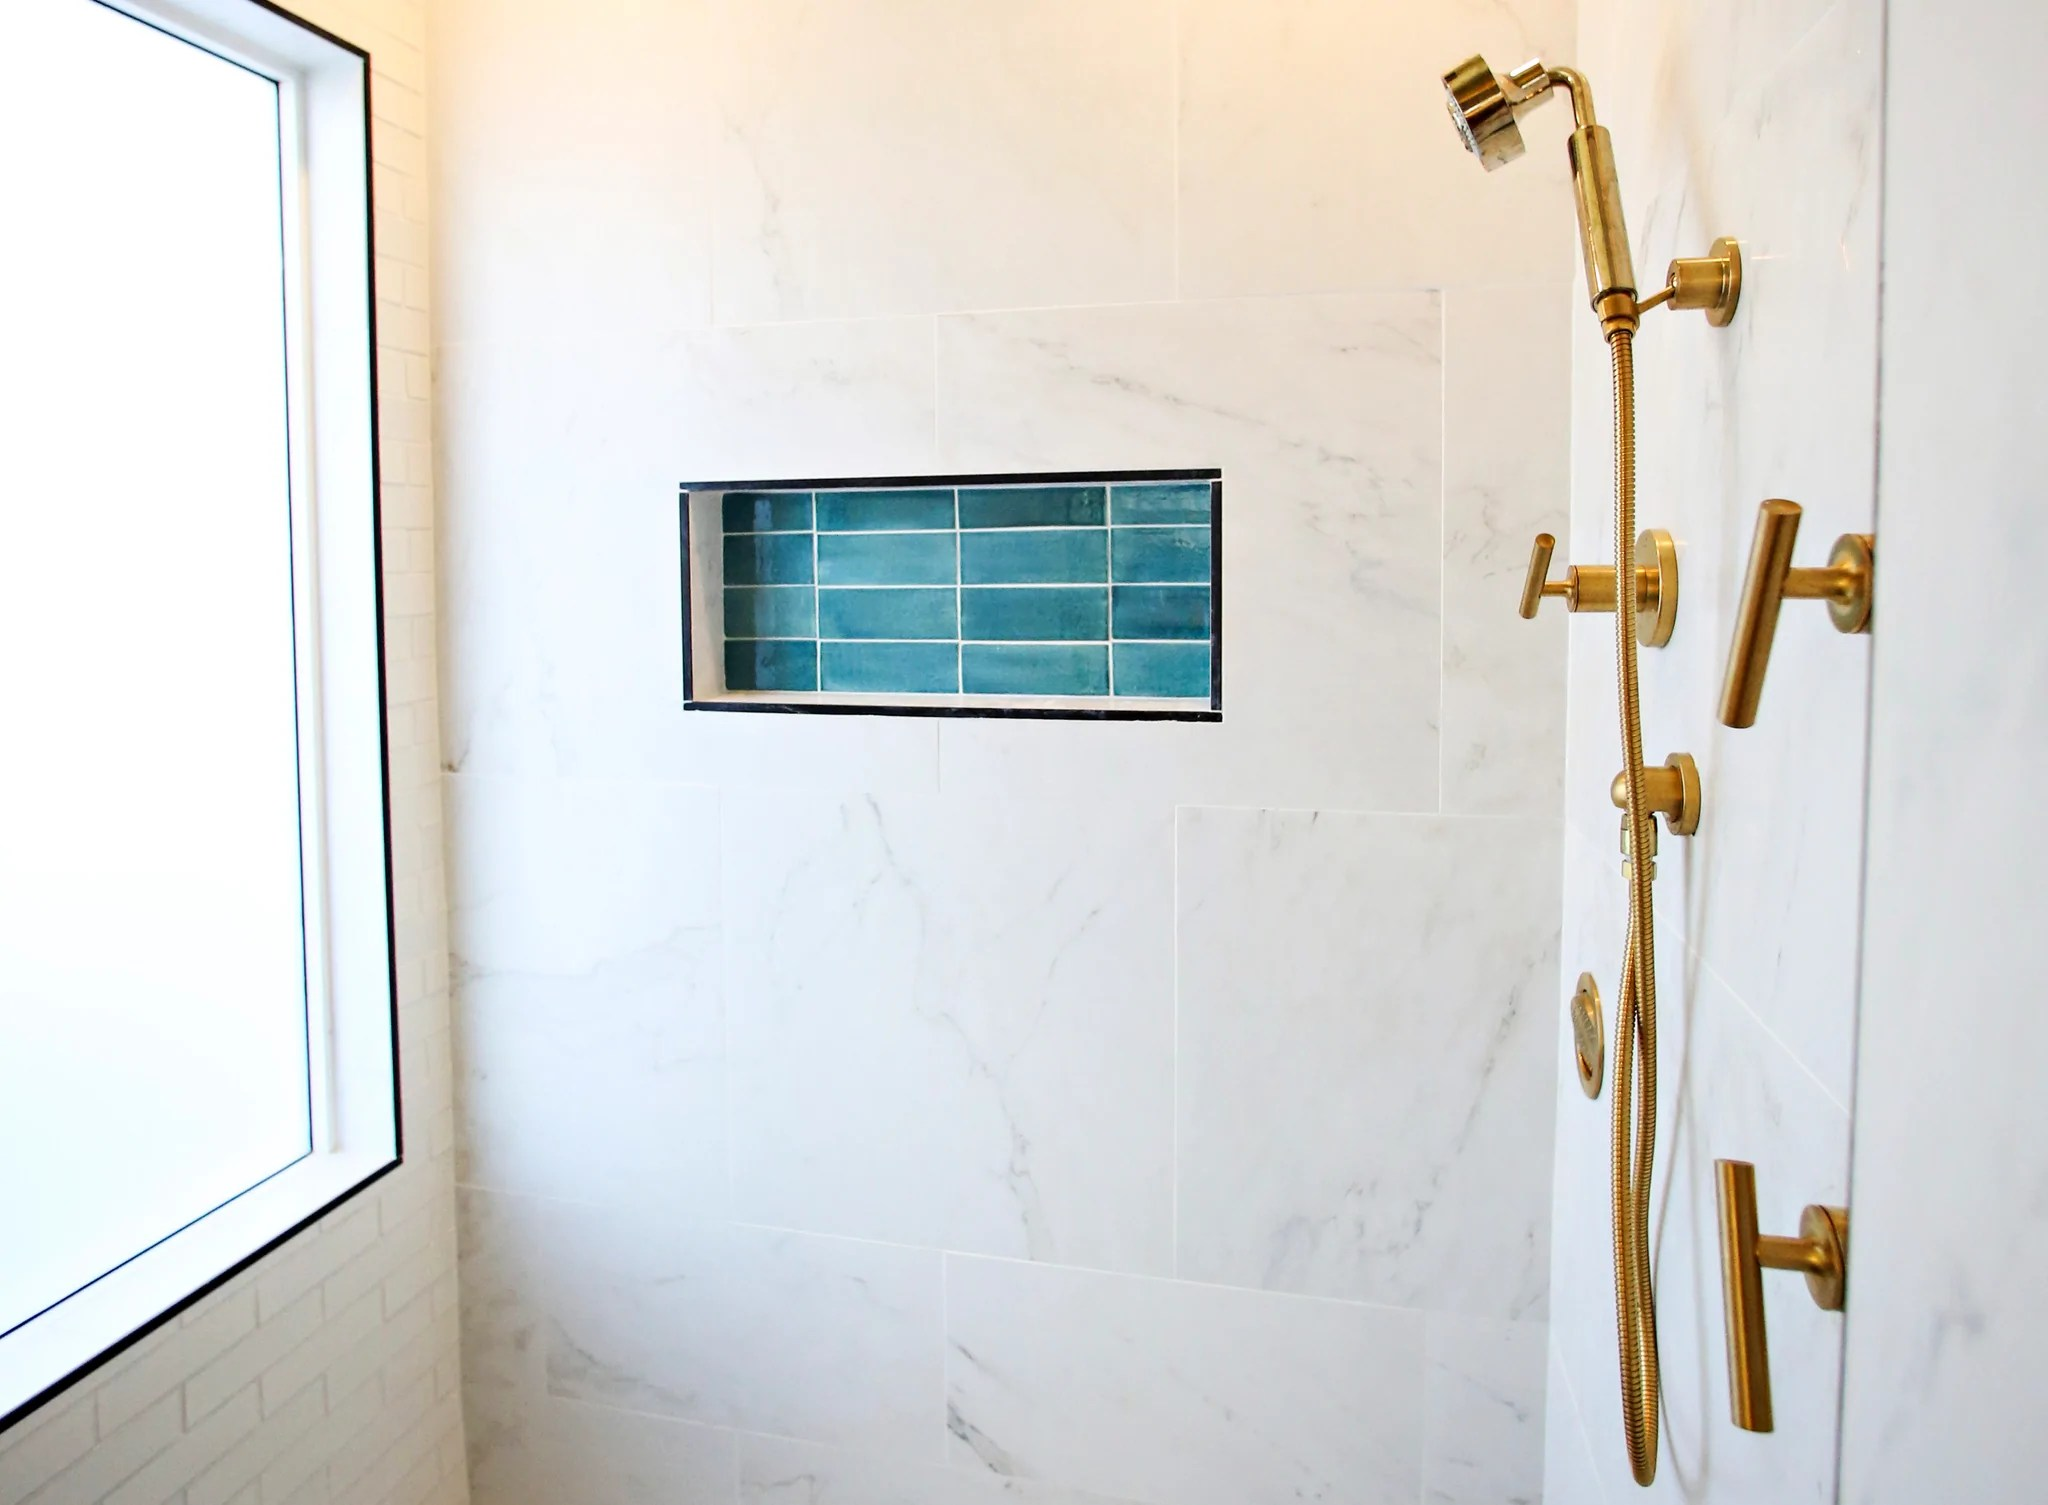 to incorporate decorative tile accents